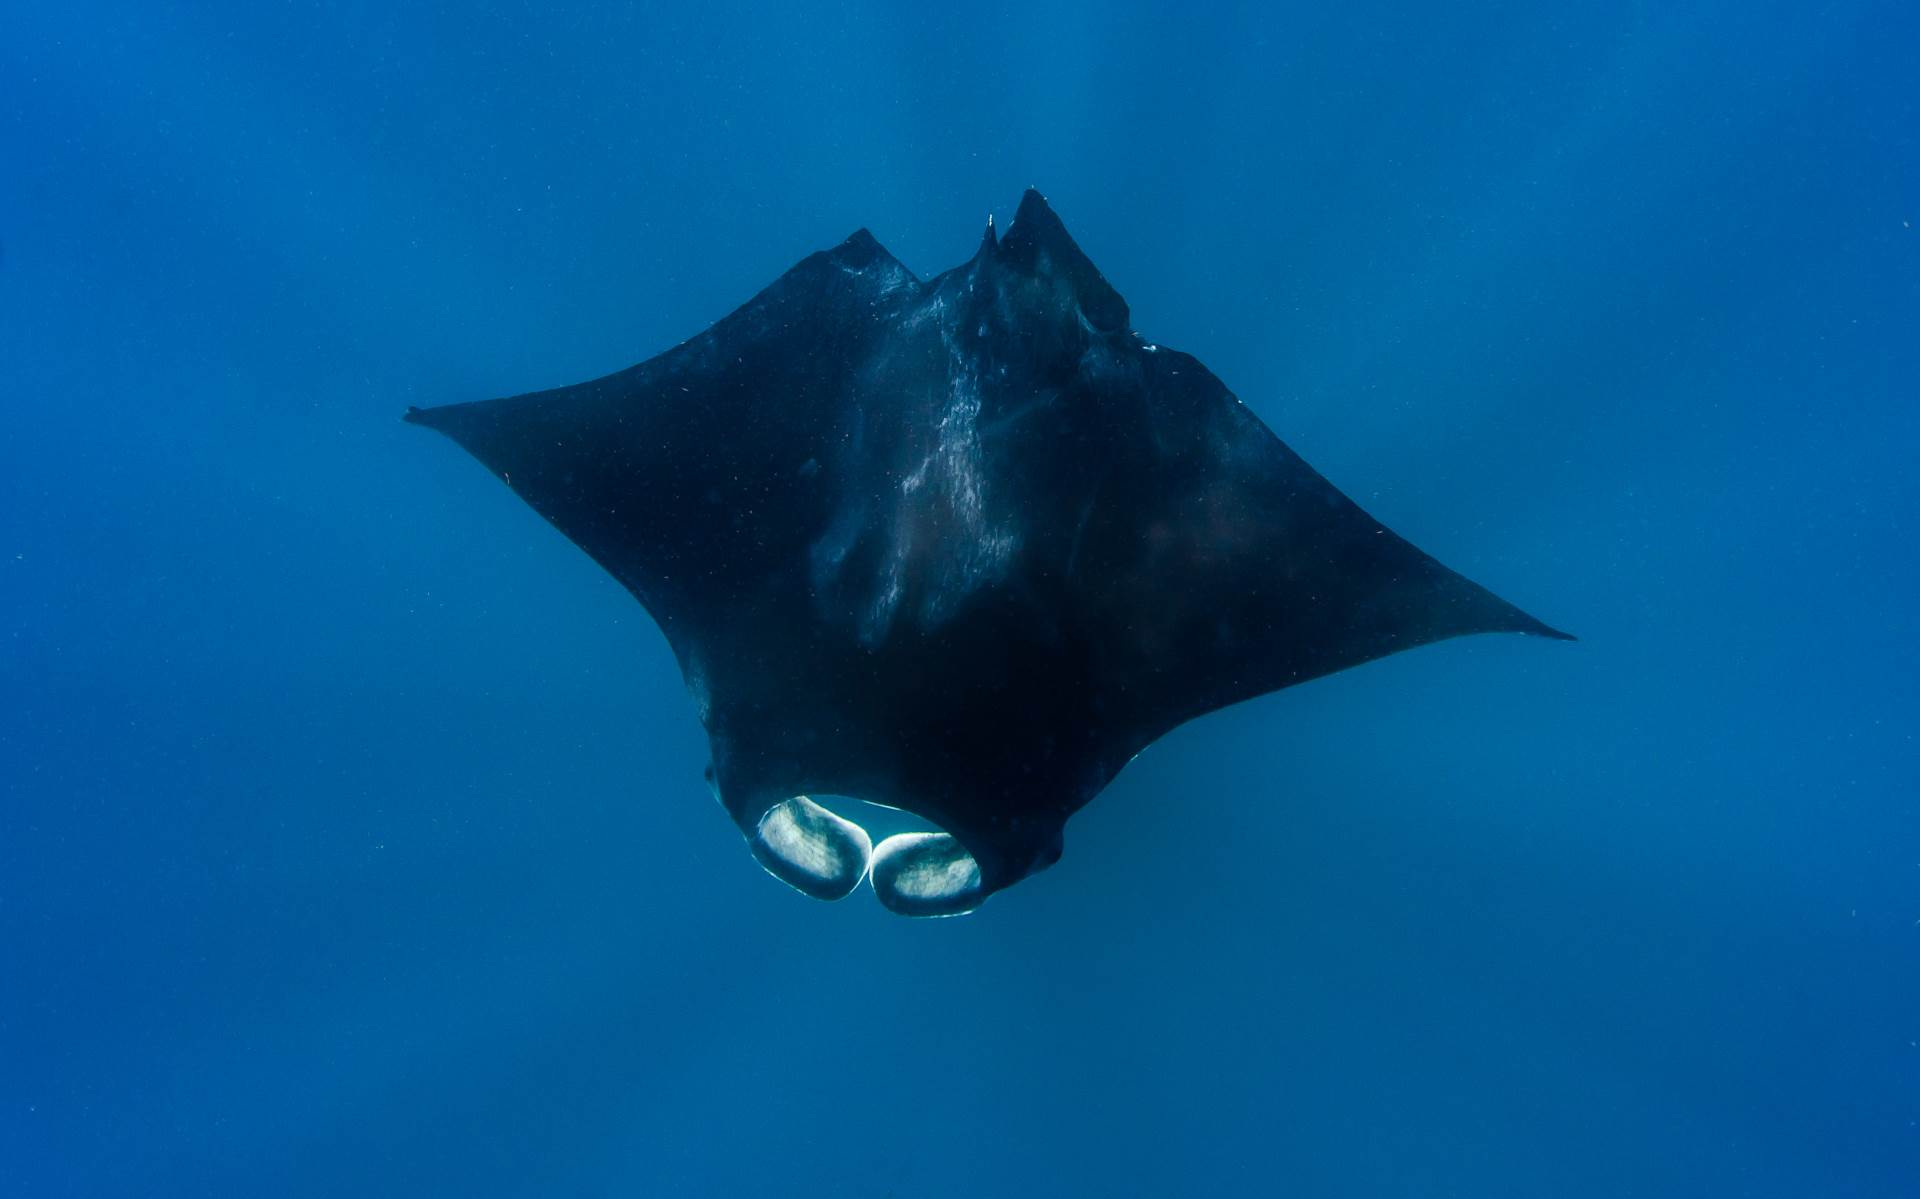 A large manta ray passes me below as I snorkel with whale sharks on the surface in Isla Mujeres